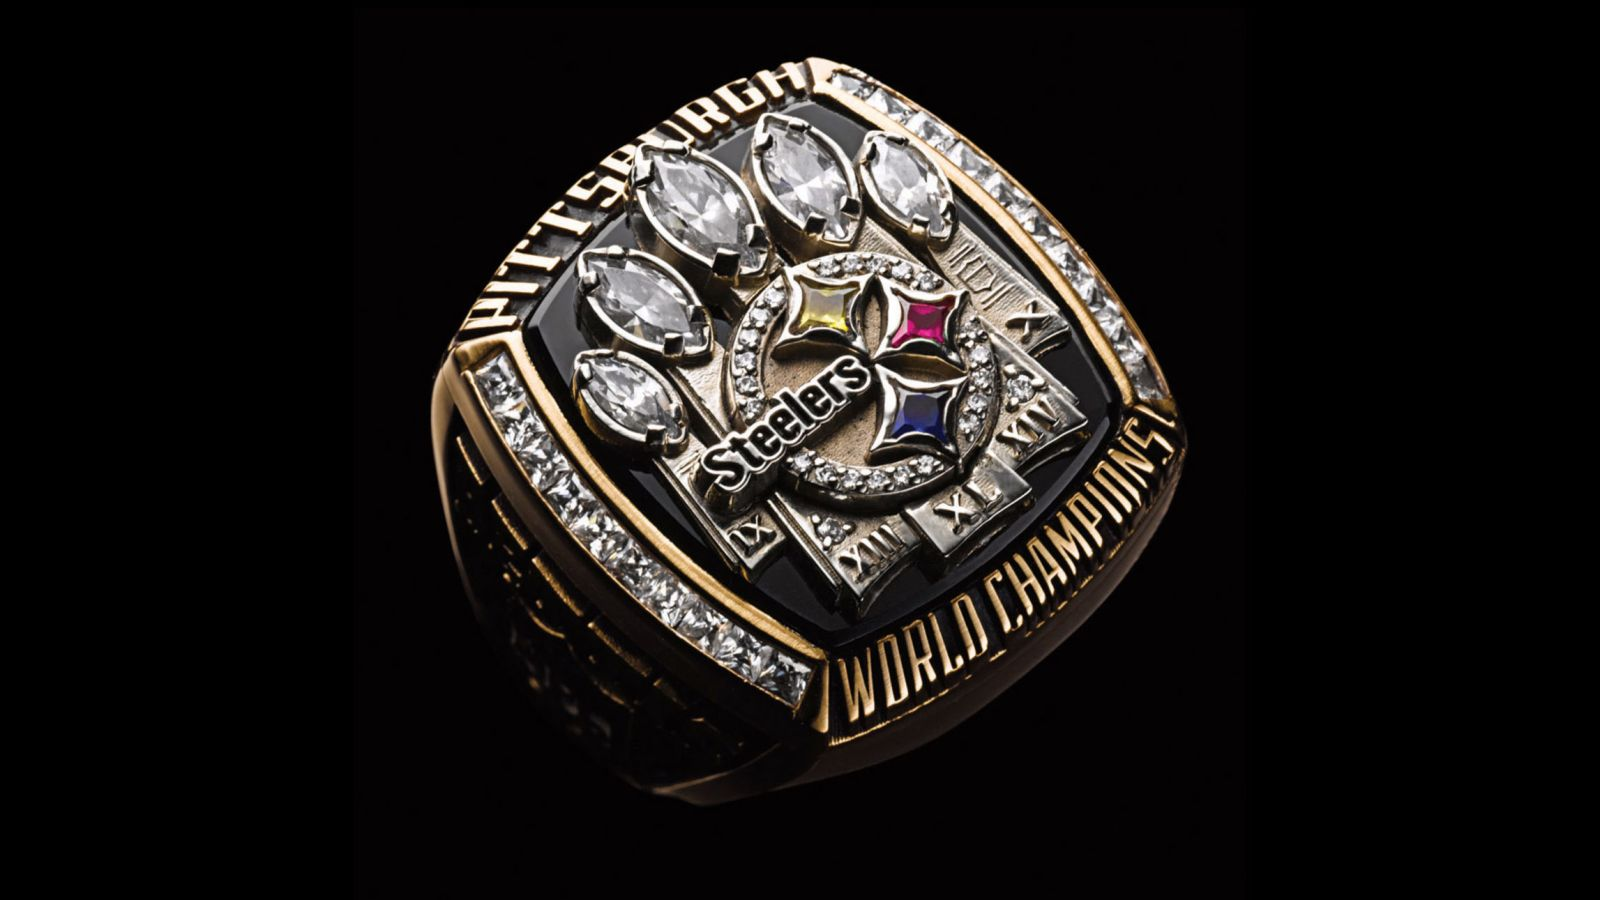 2005 Pittsburgh Steelers Super Bowl Championship Ring